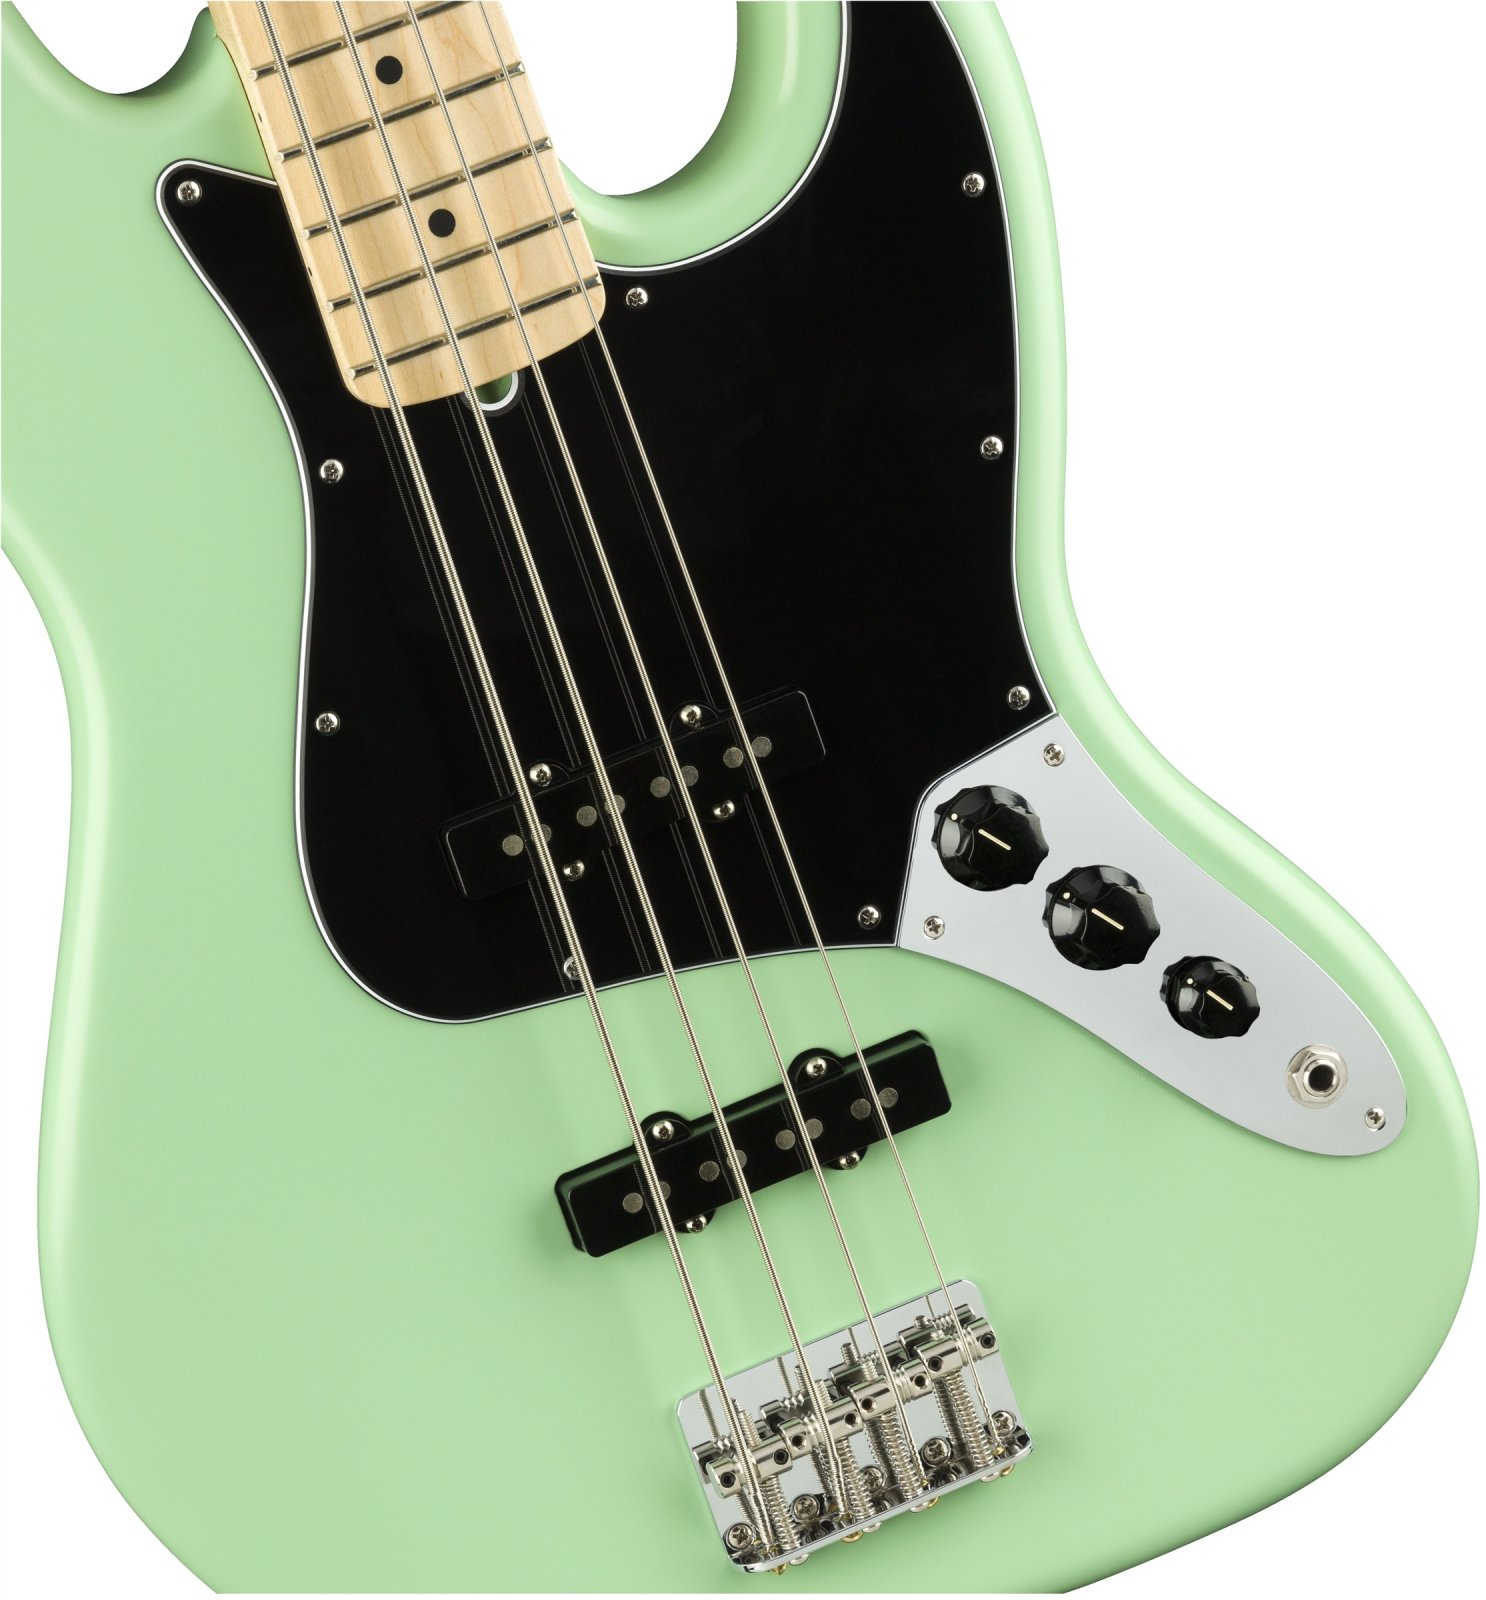 Fender American Performer Jazz Bass - Satin Sea Foam Green